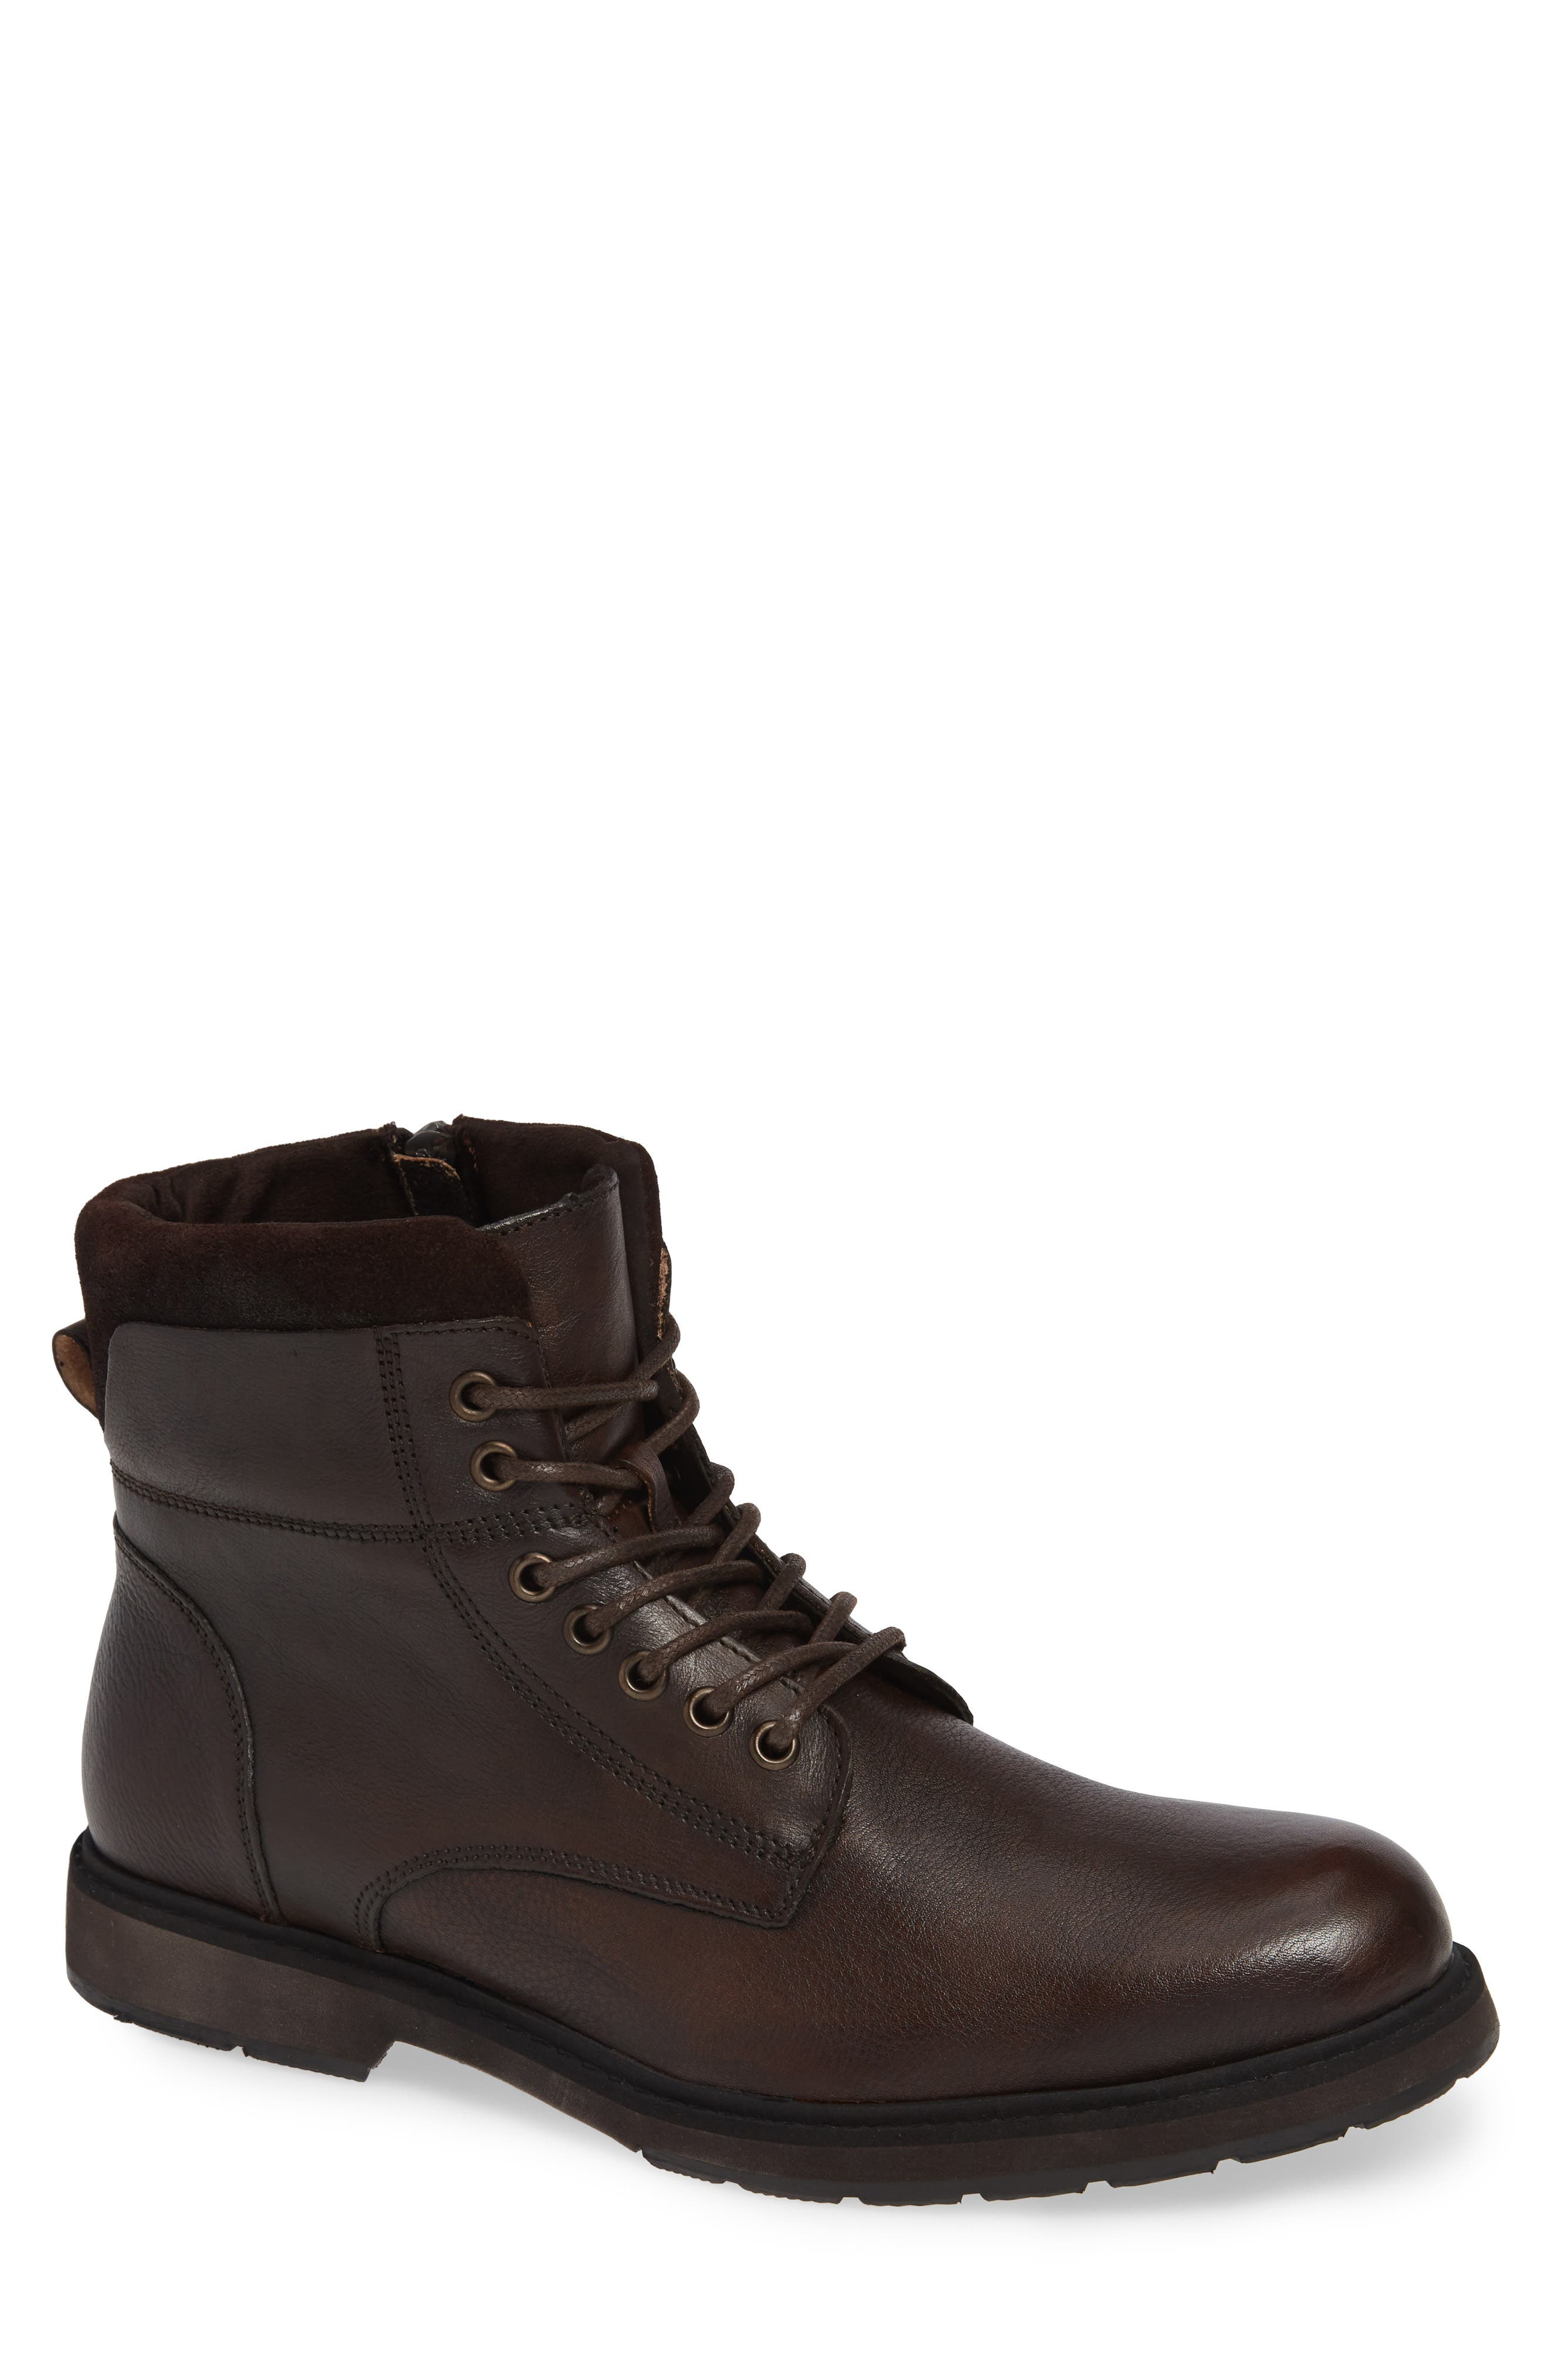 REACTION KENNETH COLE Drue Pebbled Combat Boot, Main, color, BROWN LEATHER